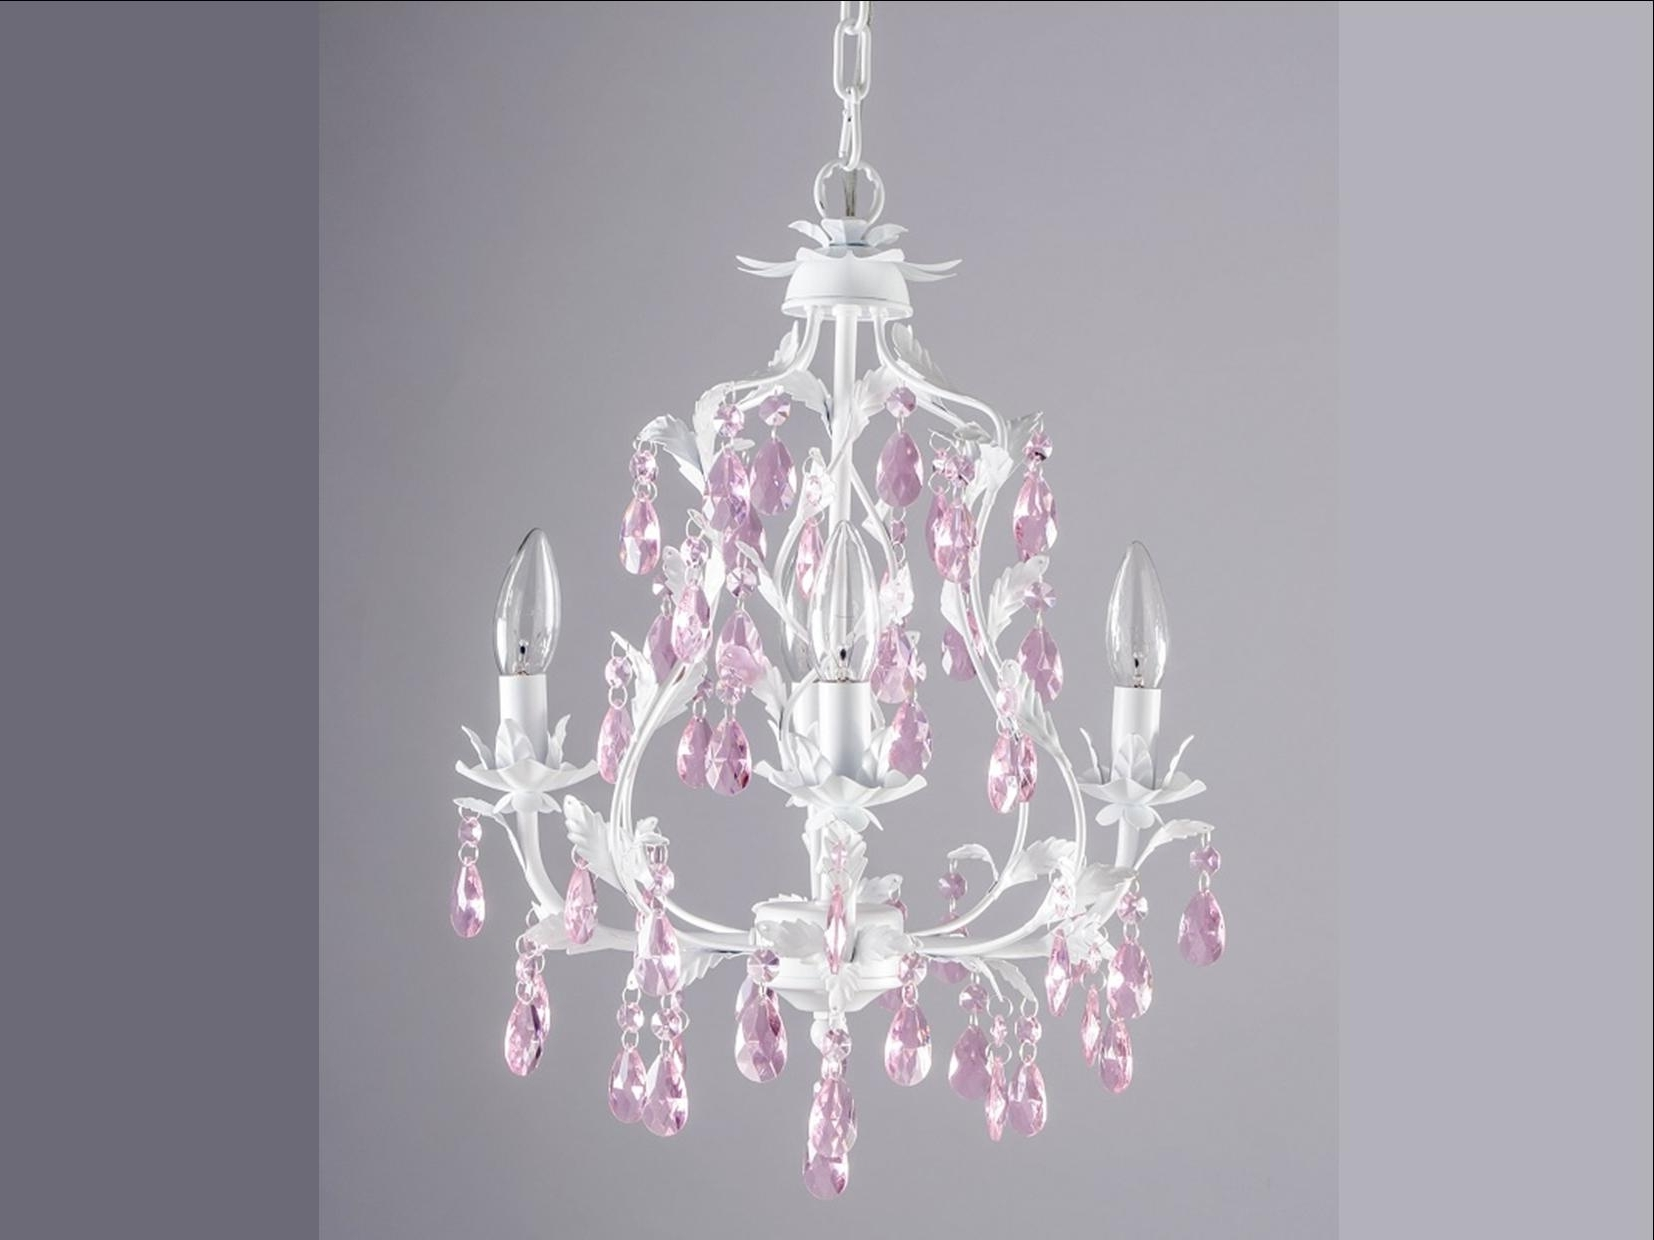 Current Childrens Pendant Lamp Shades Plug In Chandeliers For Kids Pink Inside Fuschia Chandelier (View 14 of 15)